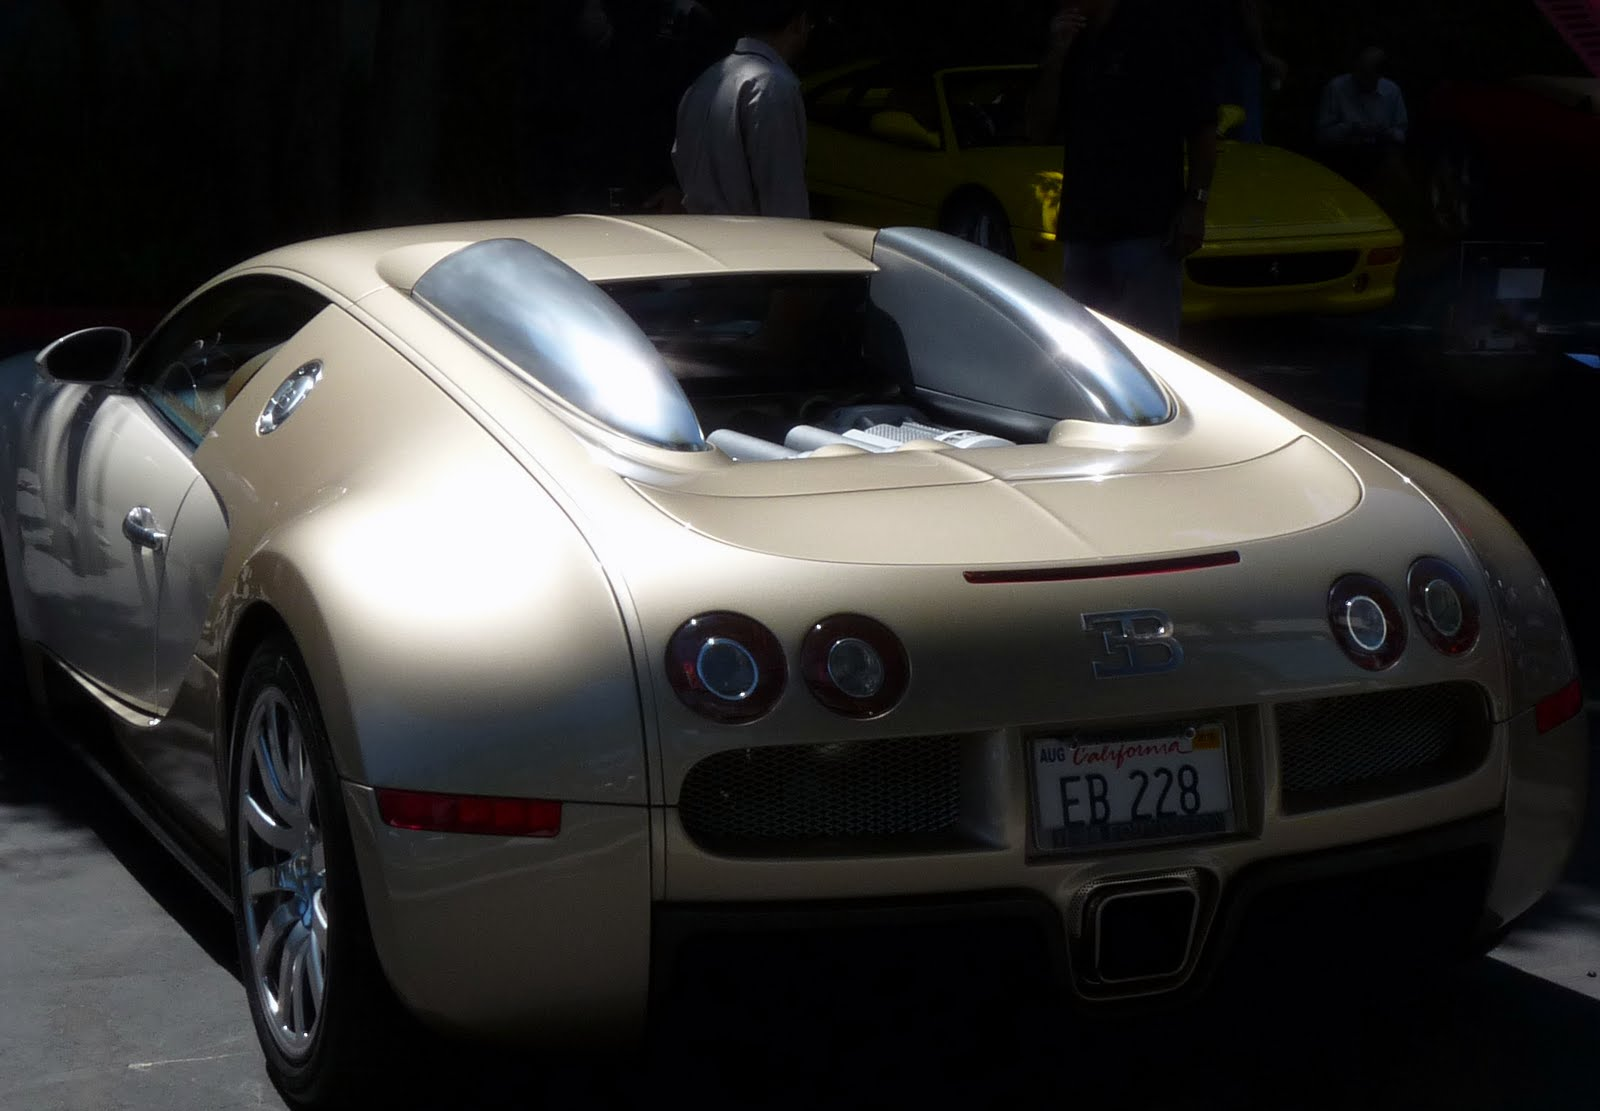 You Wonder, Will You Always Remember The First Time You Saw A Bugatti Veyron  In Real Life?